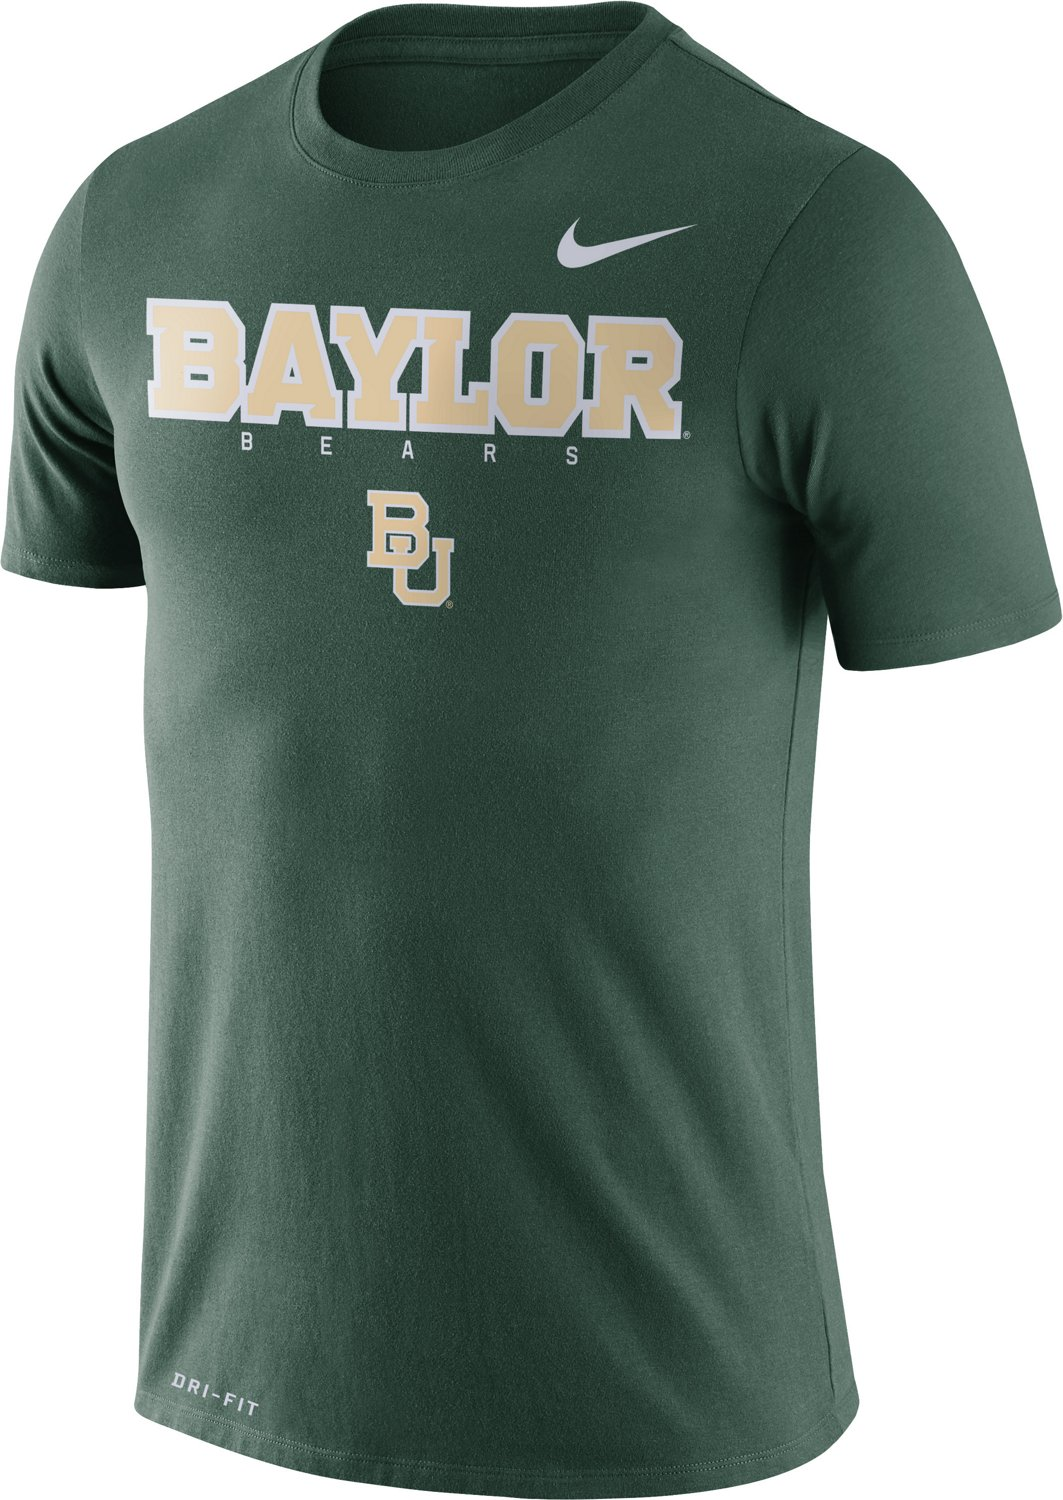 Nike Men's Baylor University Dry Facility T-shirt